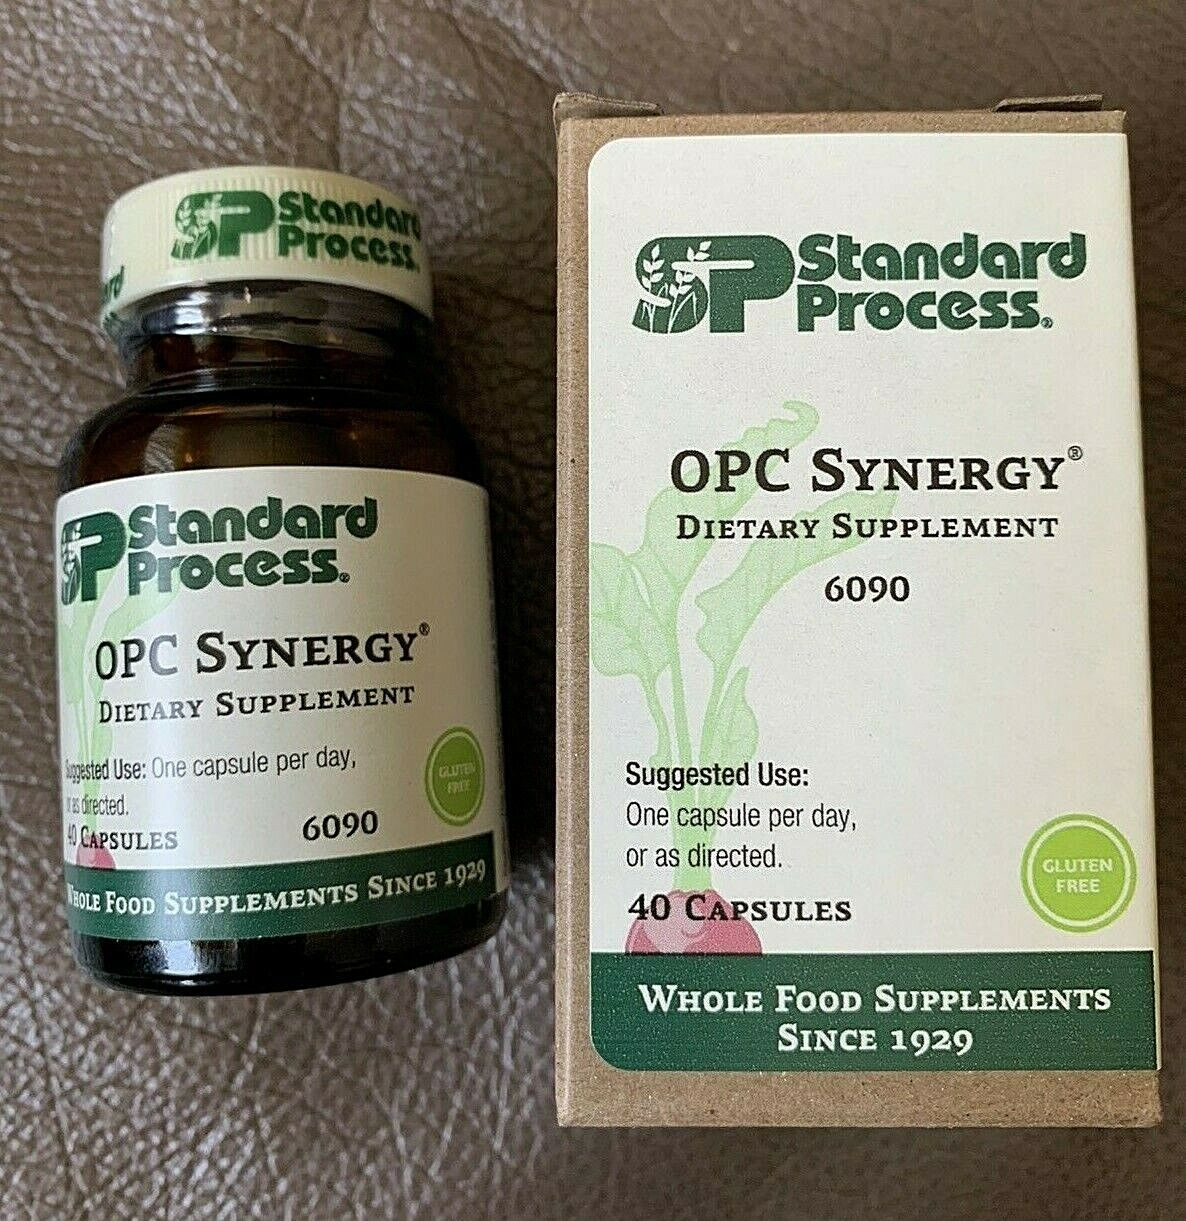 Standard Process OPC Synergy 40 Capsules, New and Sealed in Box